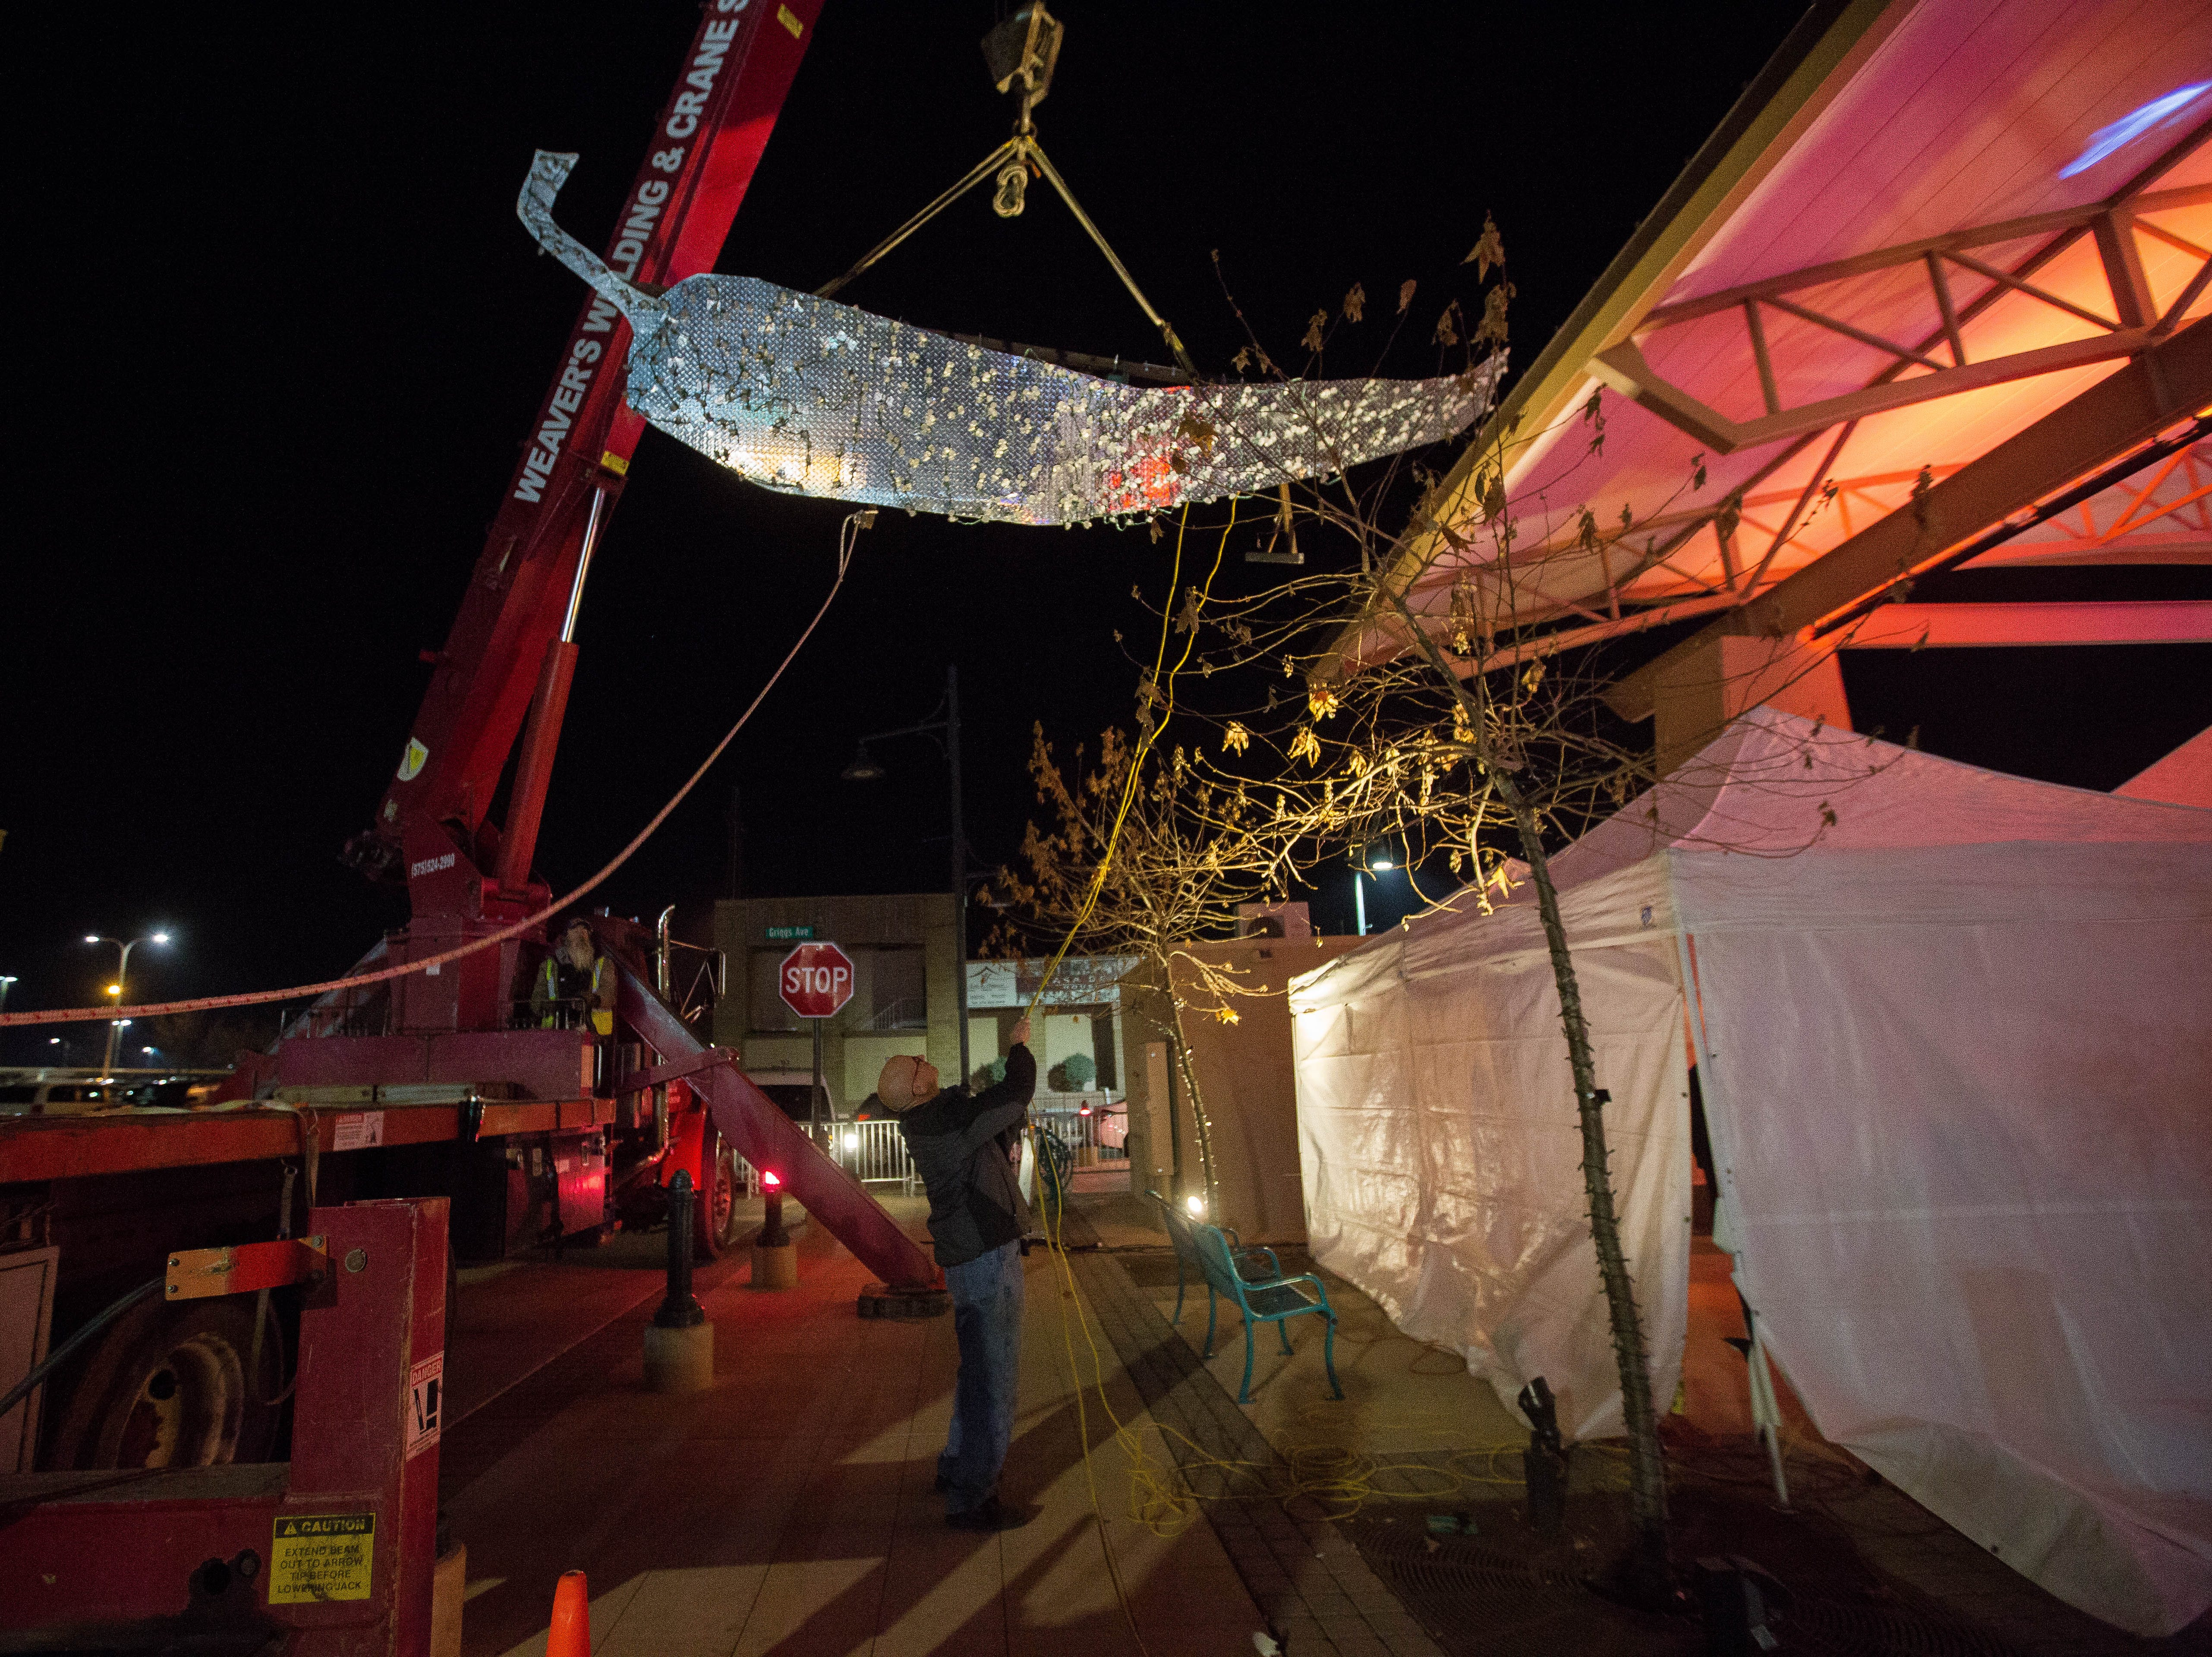 Russ Smith, one of the orginizers of the 2018 Chile Drop along with the Downtown Las Cruces Partnership, helps a crew with Weaver's Welding and Crane Services lift the chile into place, Monday, December 31, 2018 at the Plaza de Las Cruces.